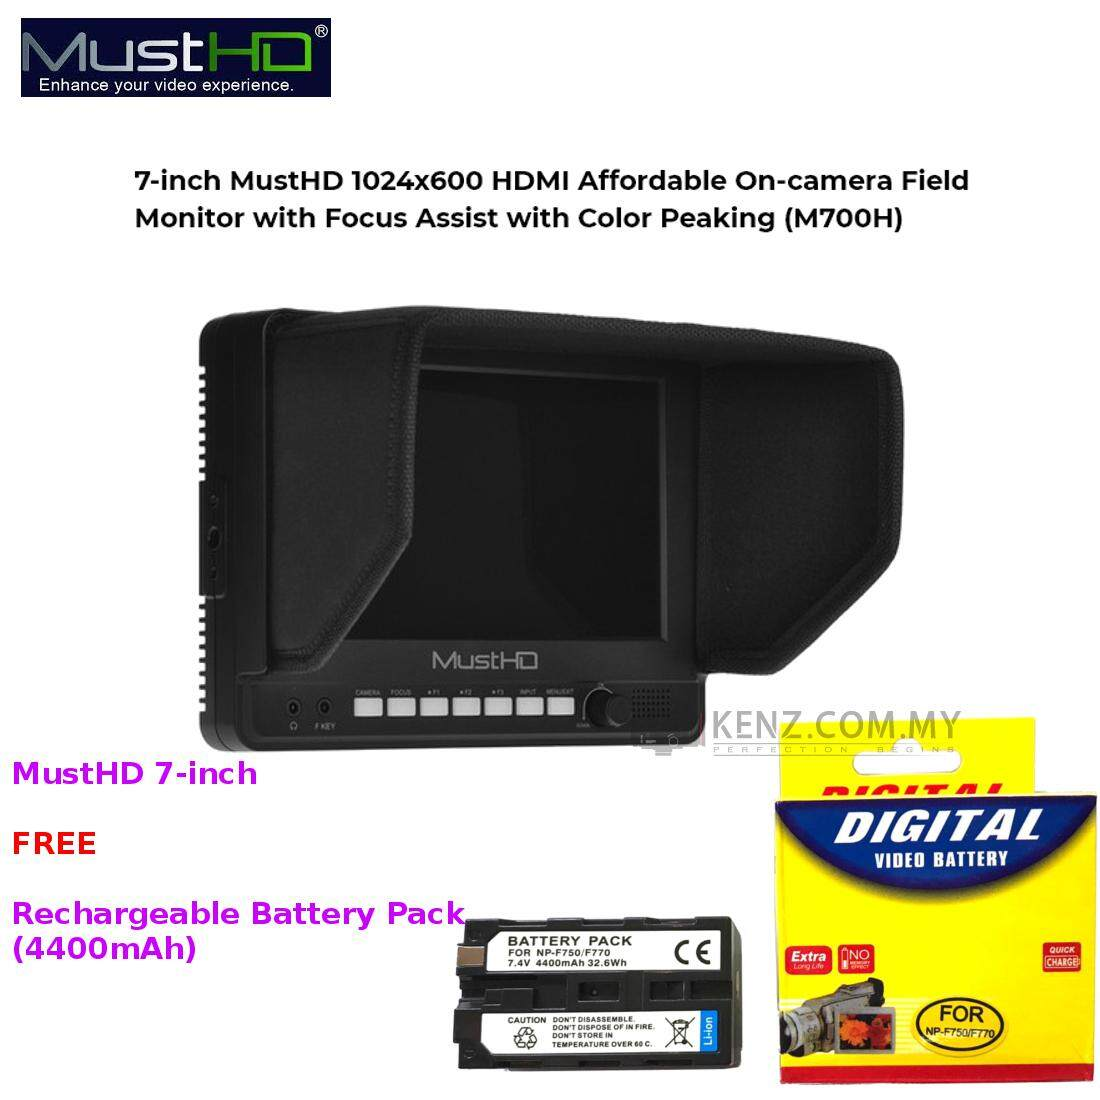 MUSTHD 7 ON CAMERA FIELD MONITOR Color Peaking (RGB) 1024 x 600 HDMI Input & Output [FREE F750/F770 Battery Pack] Malaysia